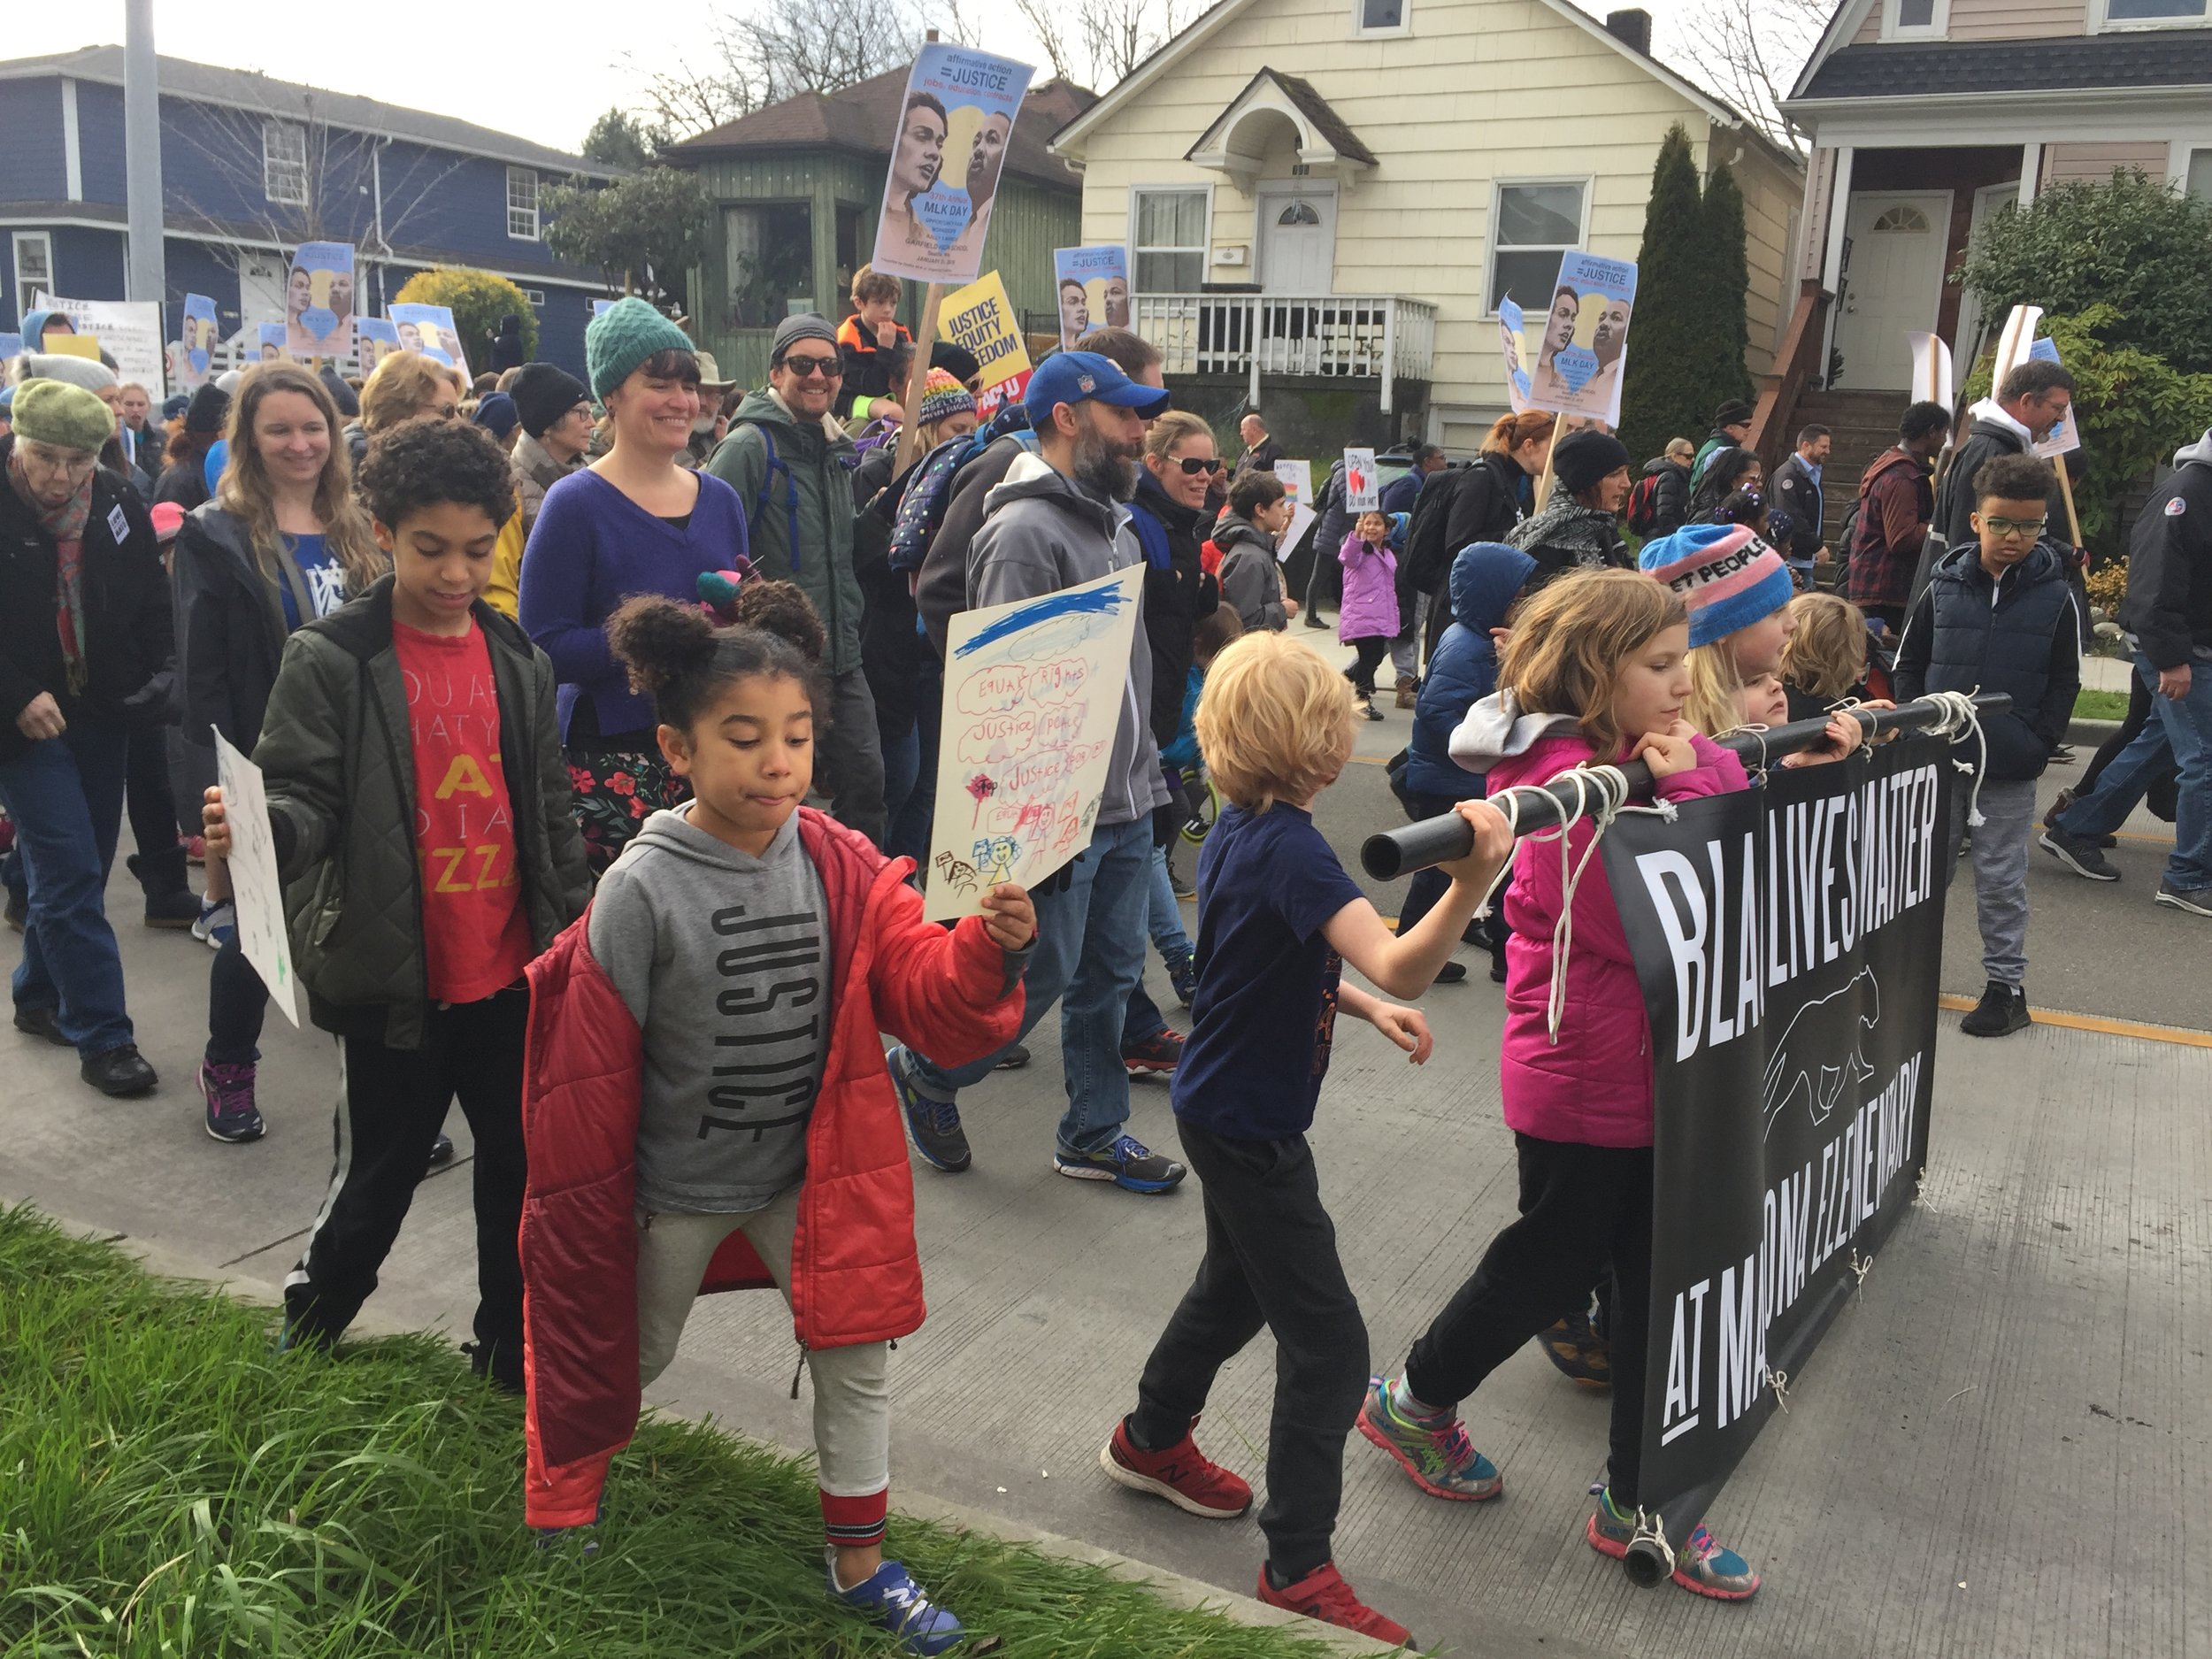 Marching with our school, neighbors, and friends!